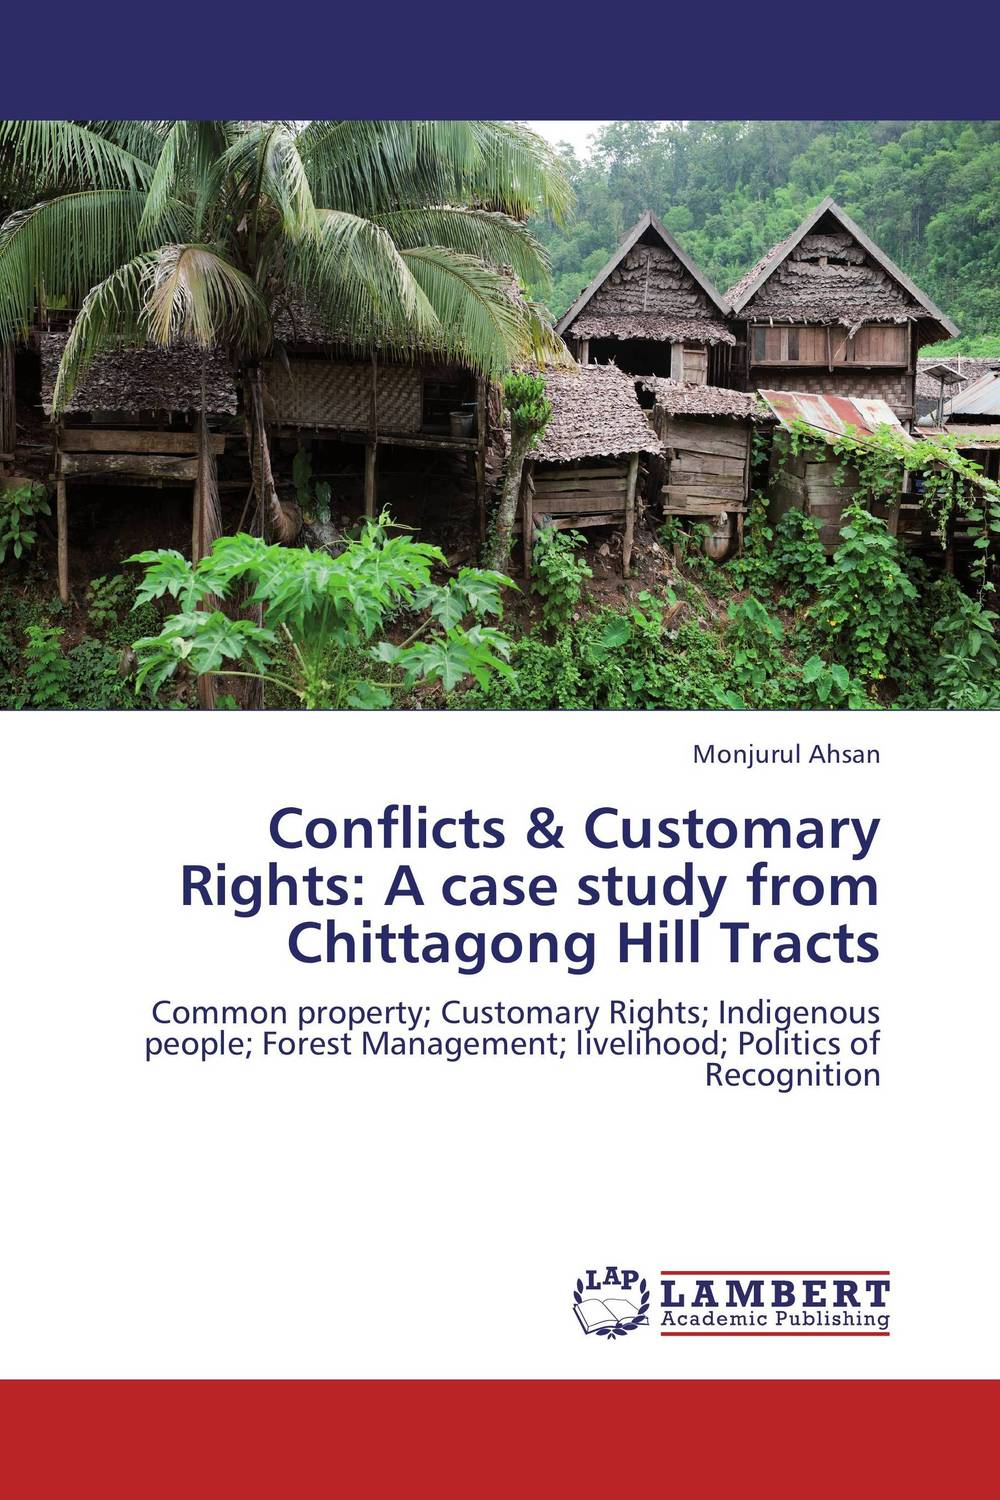 Conflicts & Customary Rights: A case study from Chittagong Hill Tracts a theoritical study of intra state conflicts